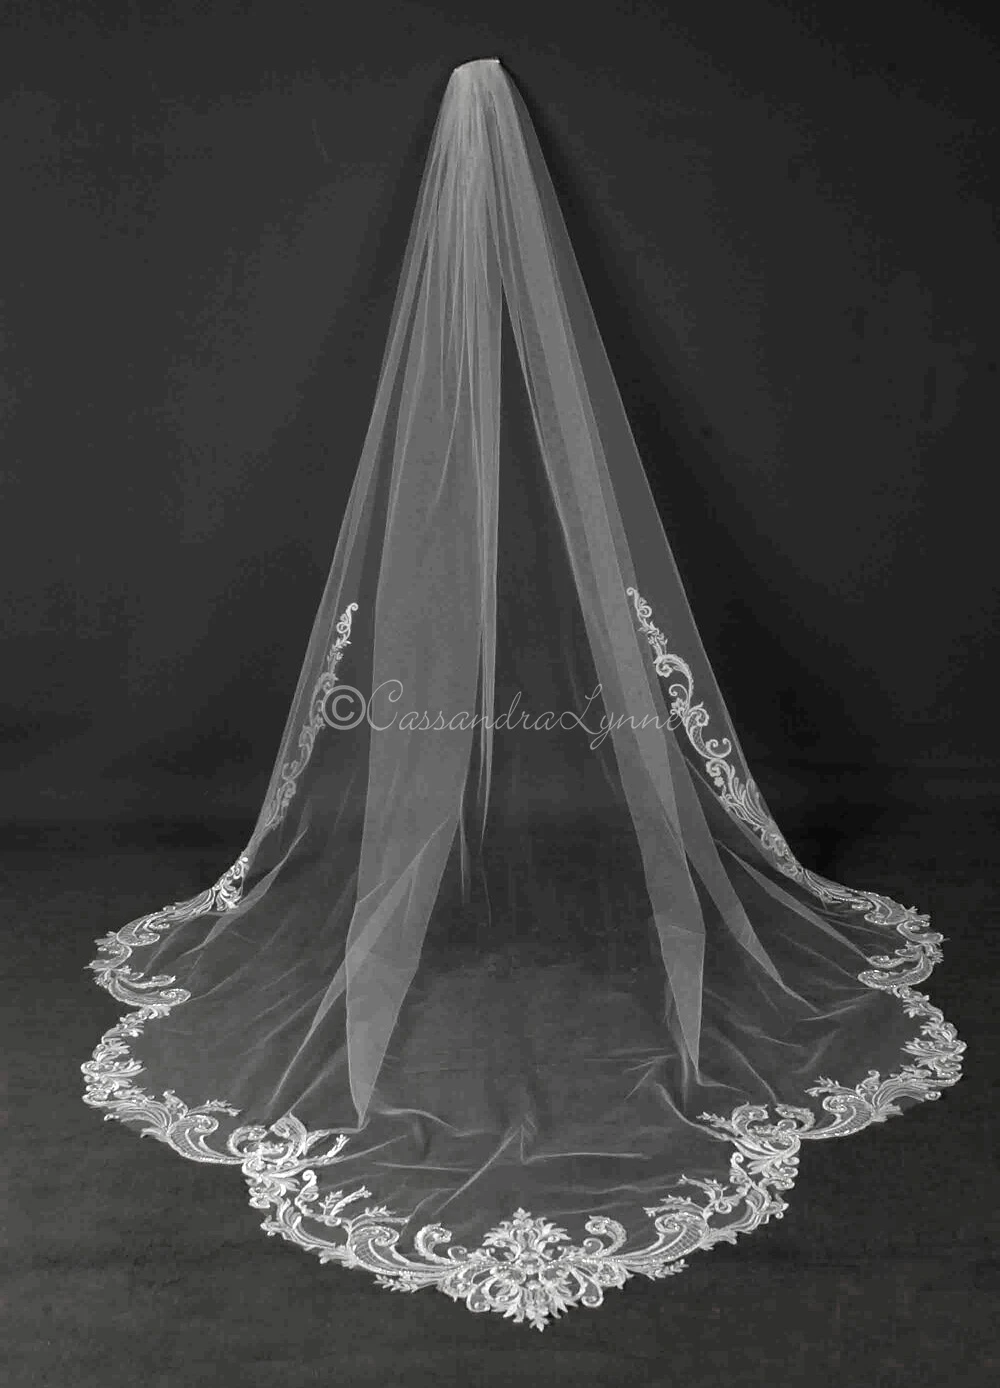 Cathedral Veil With Swirling Beaded Lace Wedding Veils Lace Cathedral Veil Long Veil Wedding - Wedding Veil, 3 Meter White Ivory Cathedral Wedding Veils Long Lace Edge Bridal Veil With Comb Wedding Accessories Bride Veu Wedding Veil Bridal Veil With Comb Cathedral Wedding Veilwedding Veil Aliexpress